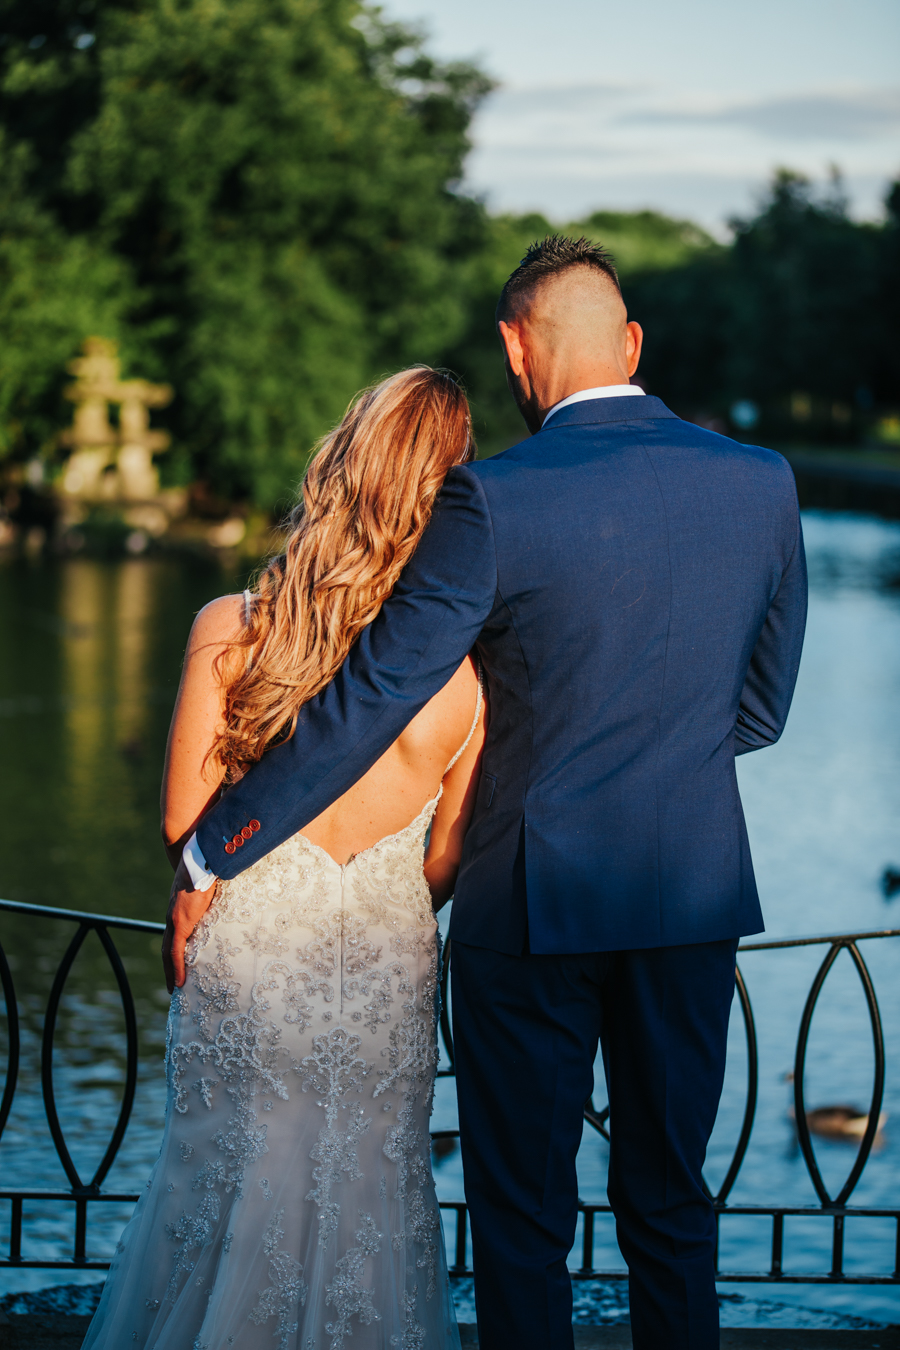 Beckie & James's lakeside elopement photoshoot, with Your Choice Photography (6)